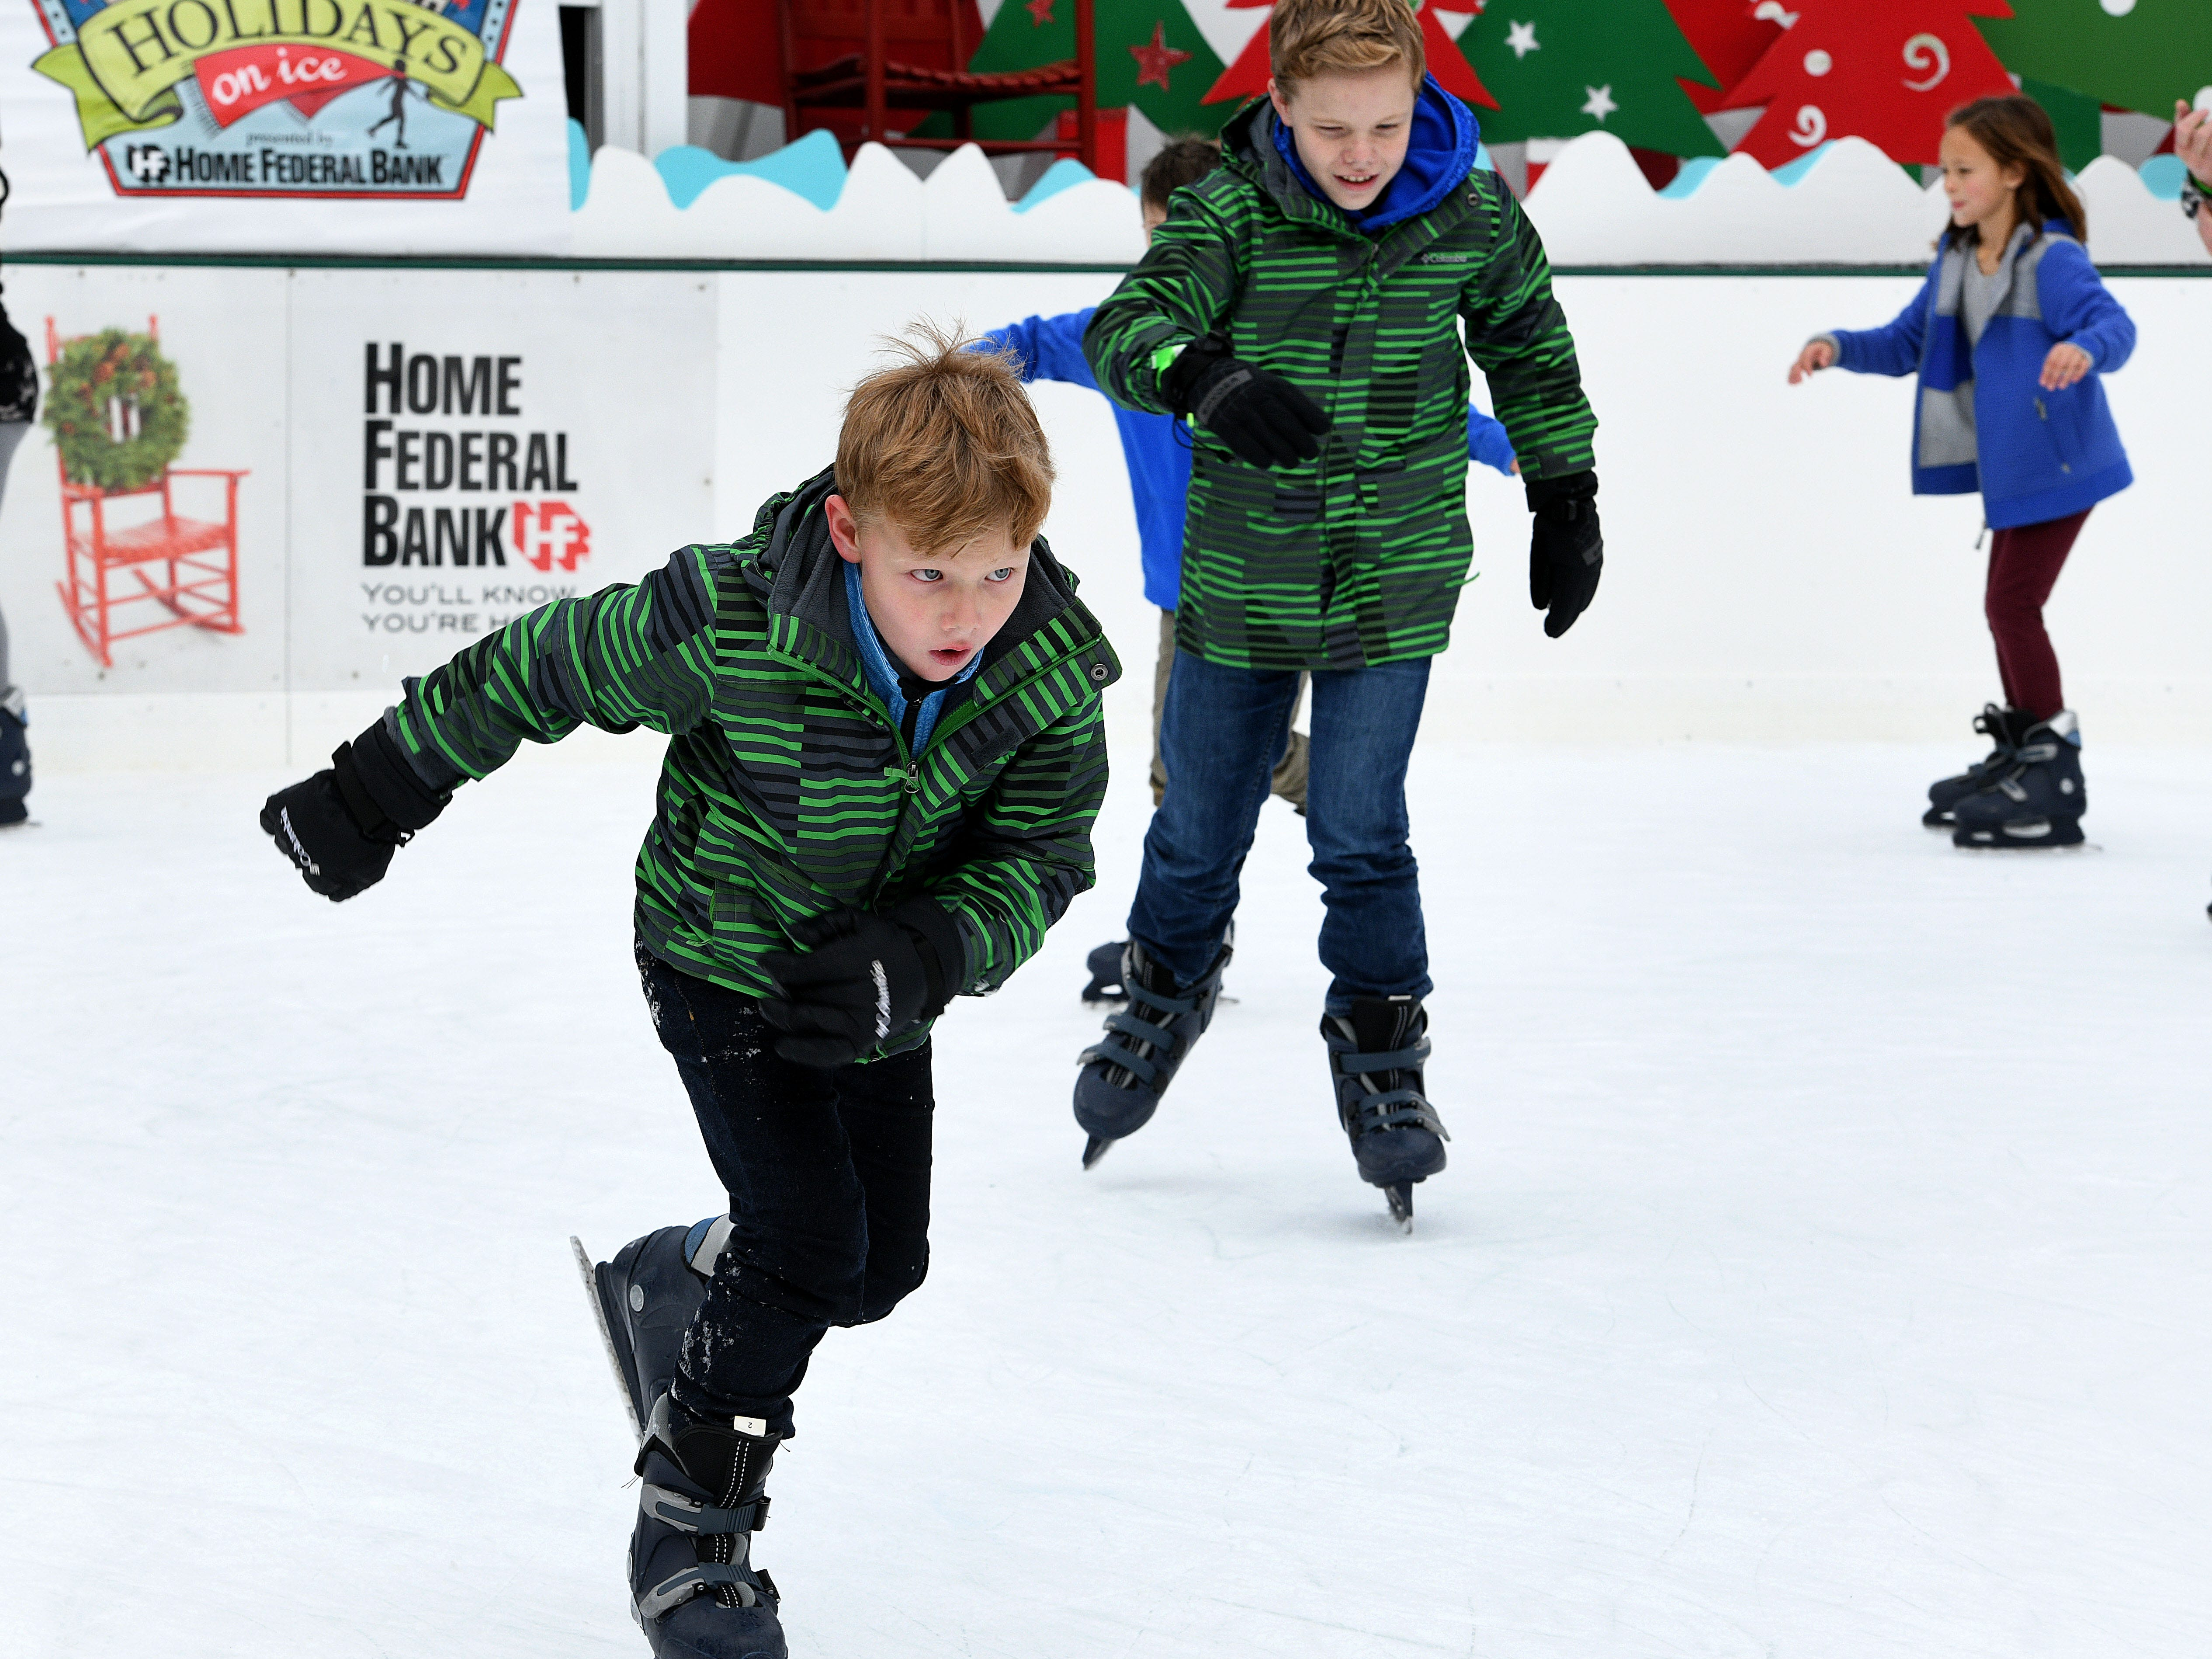 First day of ice skating on Market Square Friday, Nov. 23, 2018. Skating hours are 10 a.m. to 10 p.m. Families and friends enjoyed skating in the heart of Downtown Knoxville in Market Square.